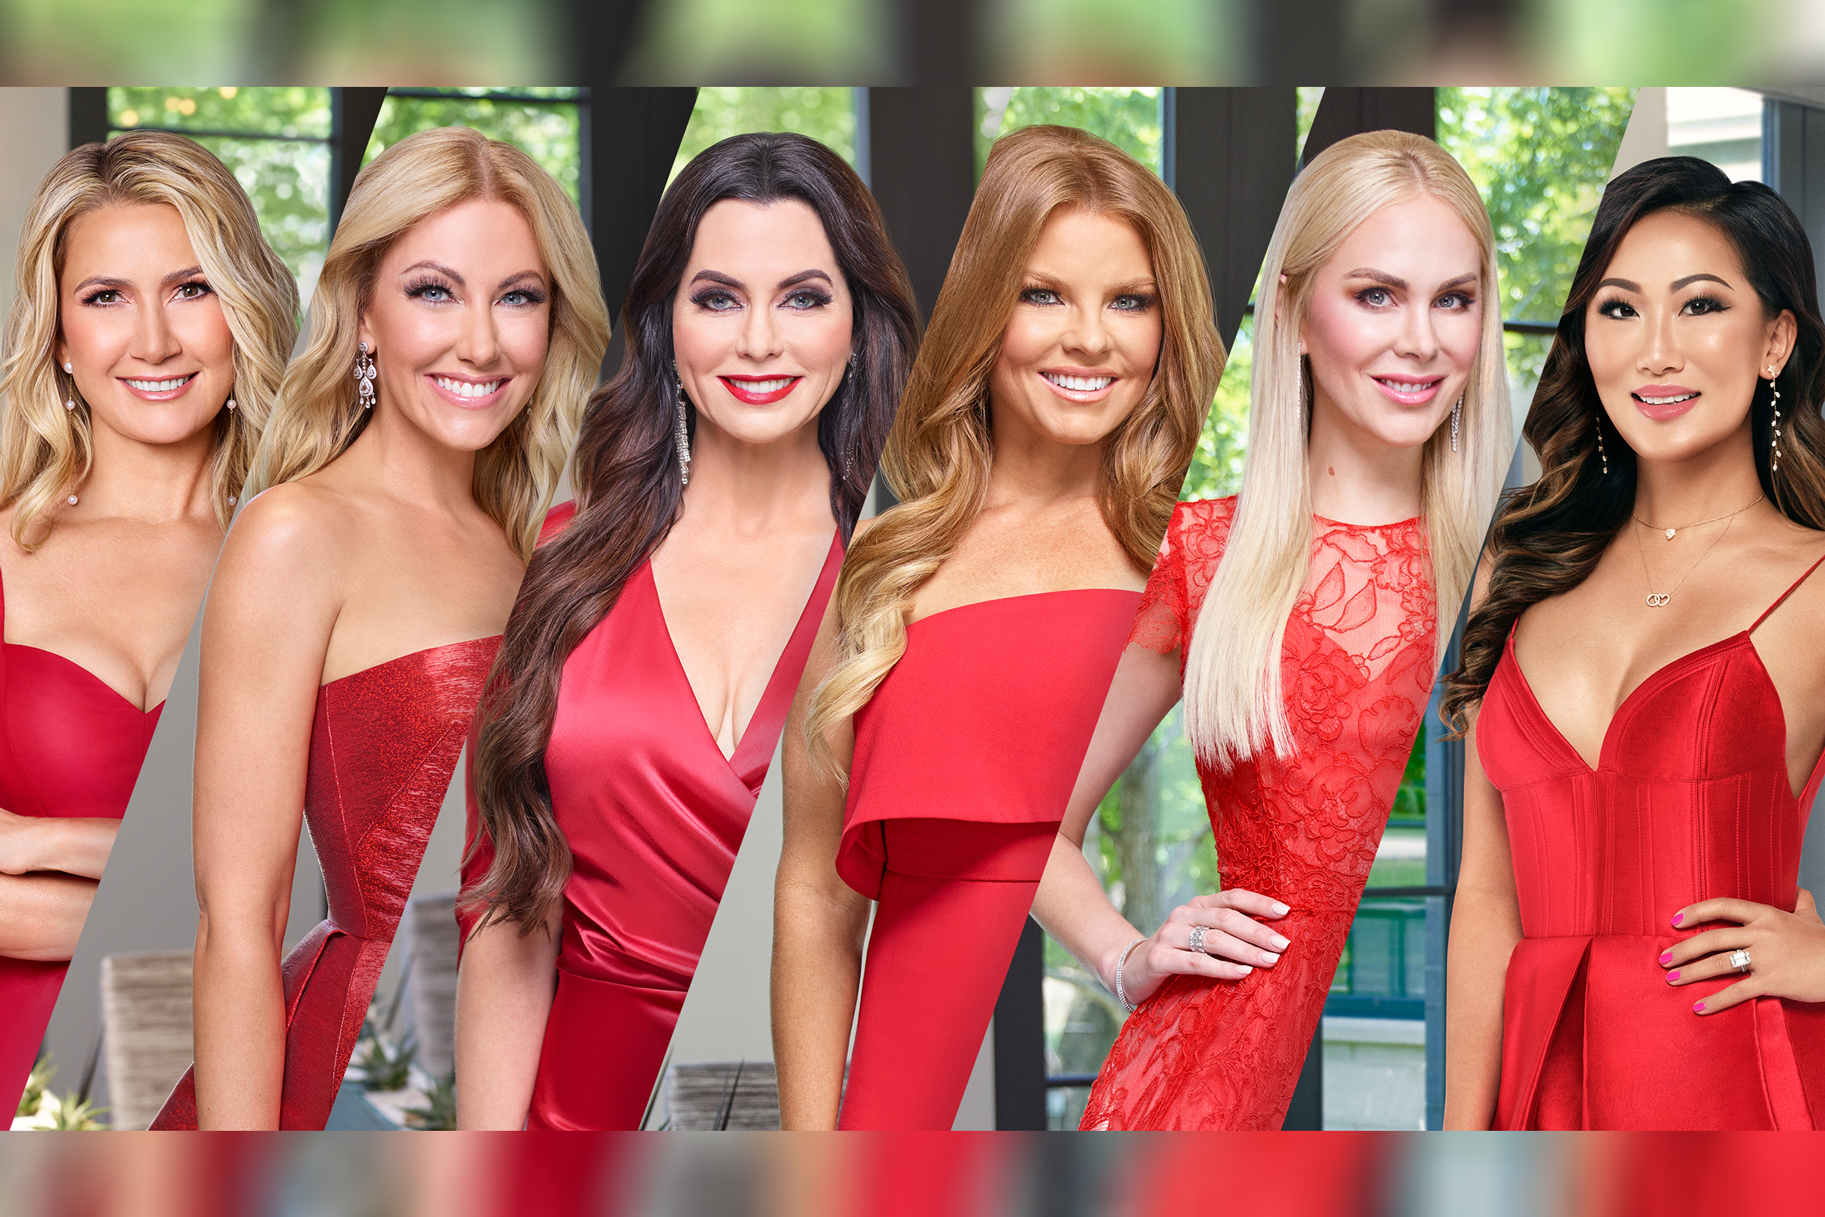 Rhod Season 5 Cast Preview